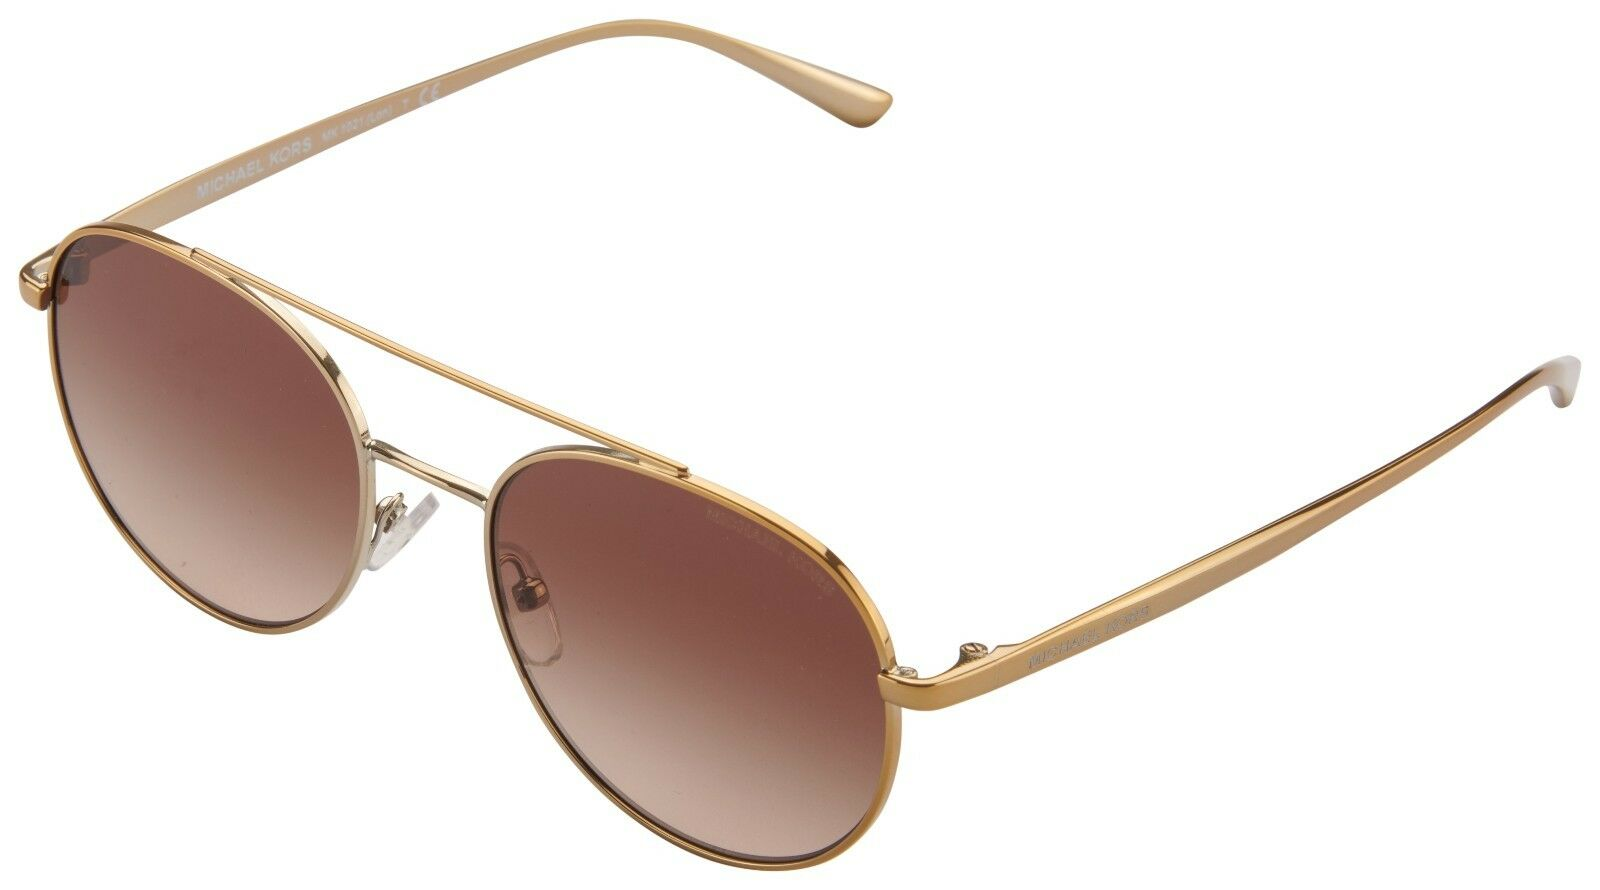 Michael Kors Sunglasses MK 5016 10245a Gold Tone Bronze Mirrored 56 Mm